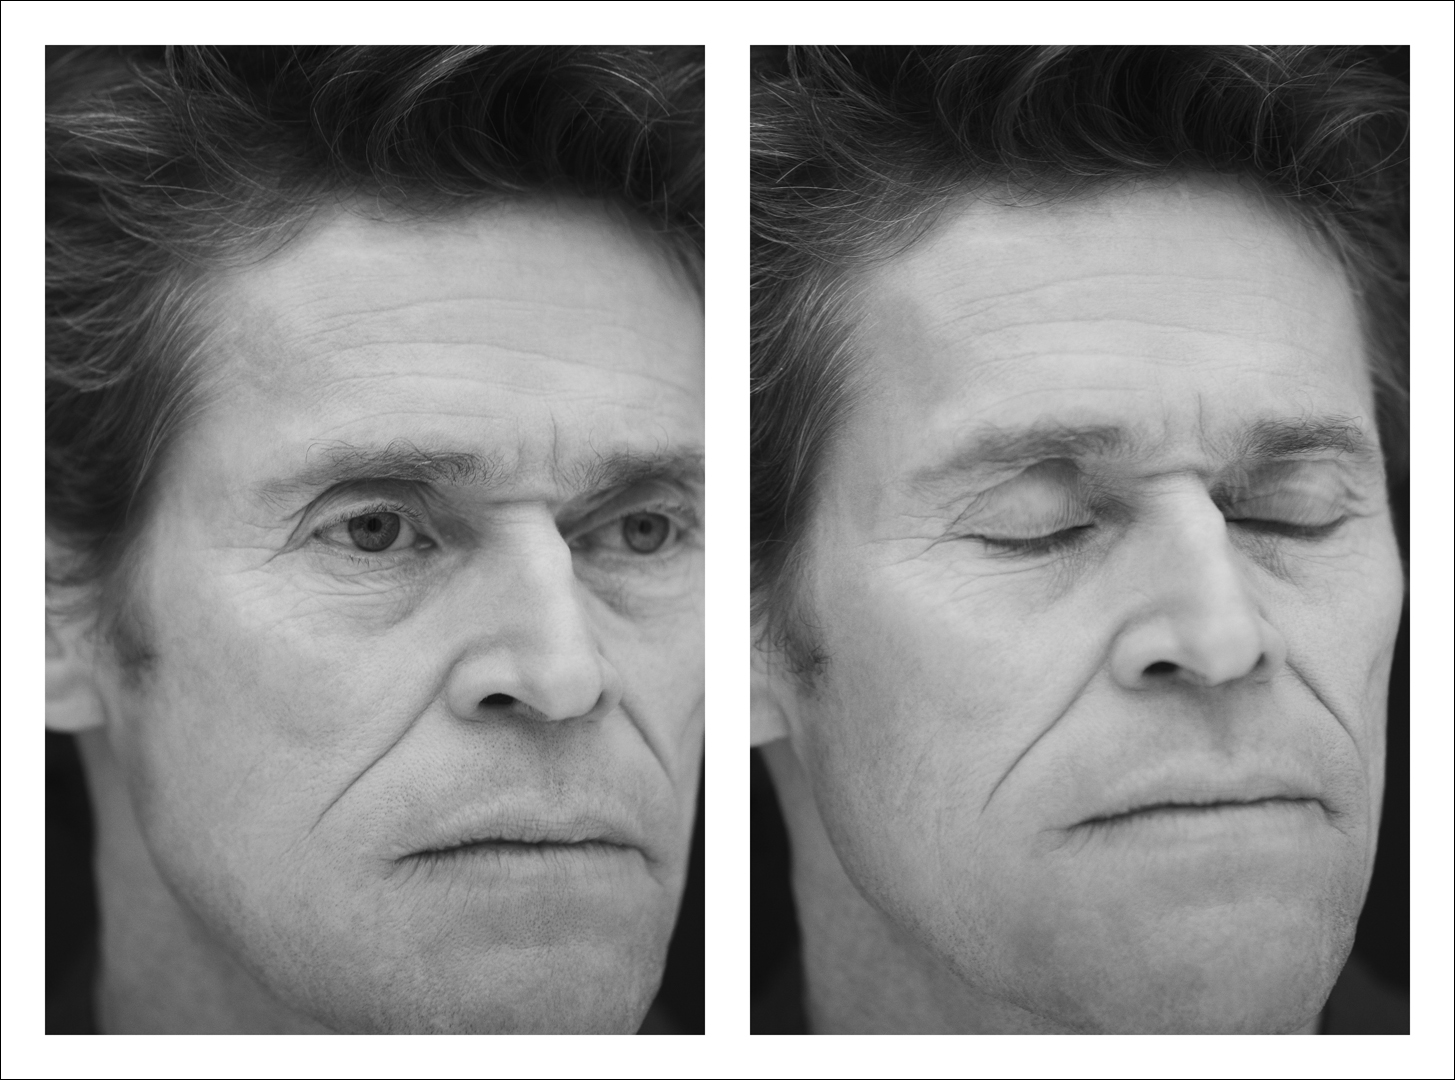 03_TIM_BARBER_WILLEM_DAFOE.jpg